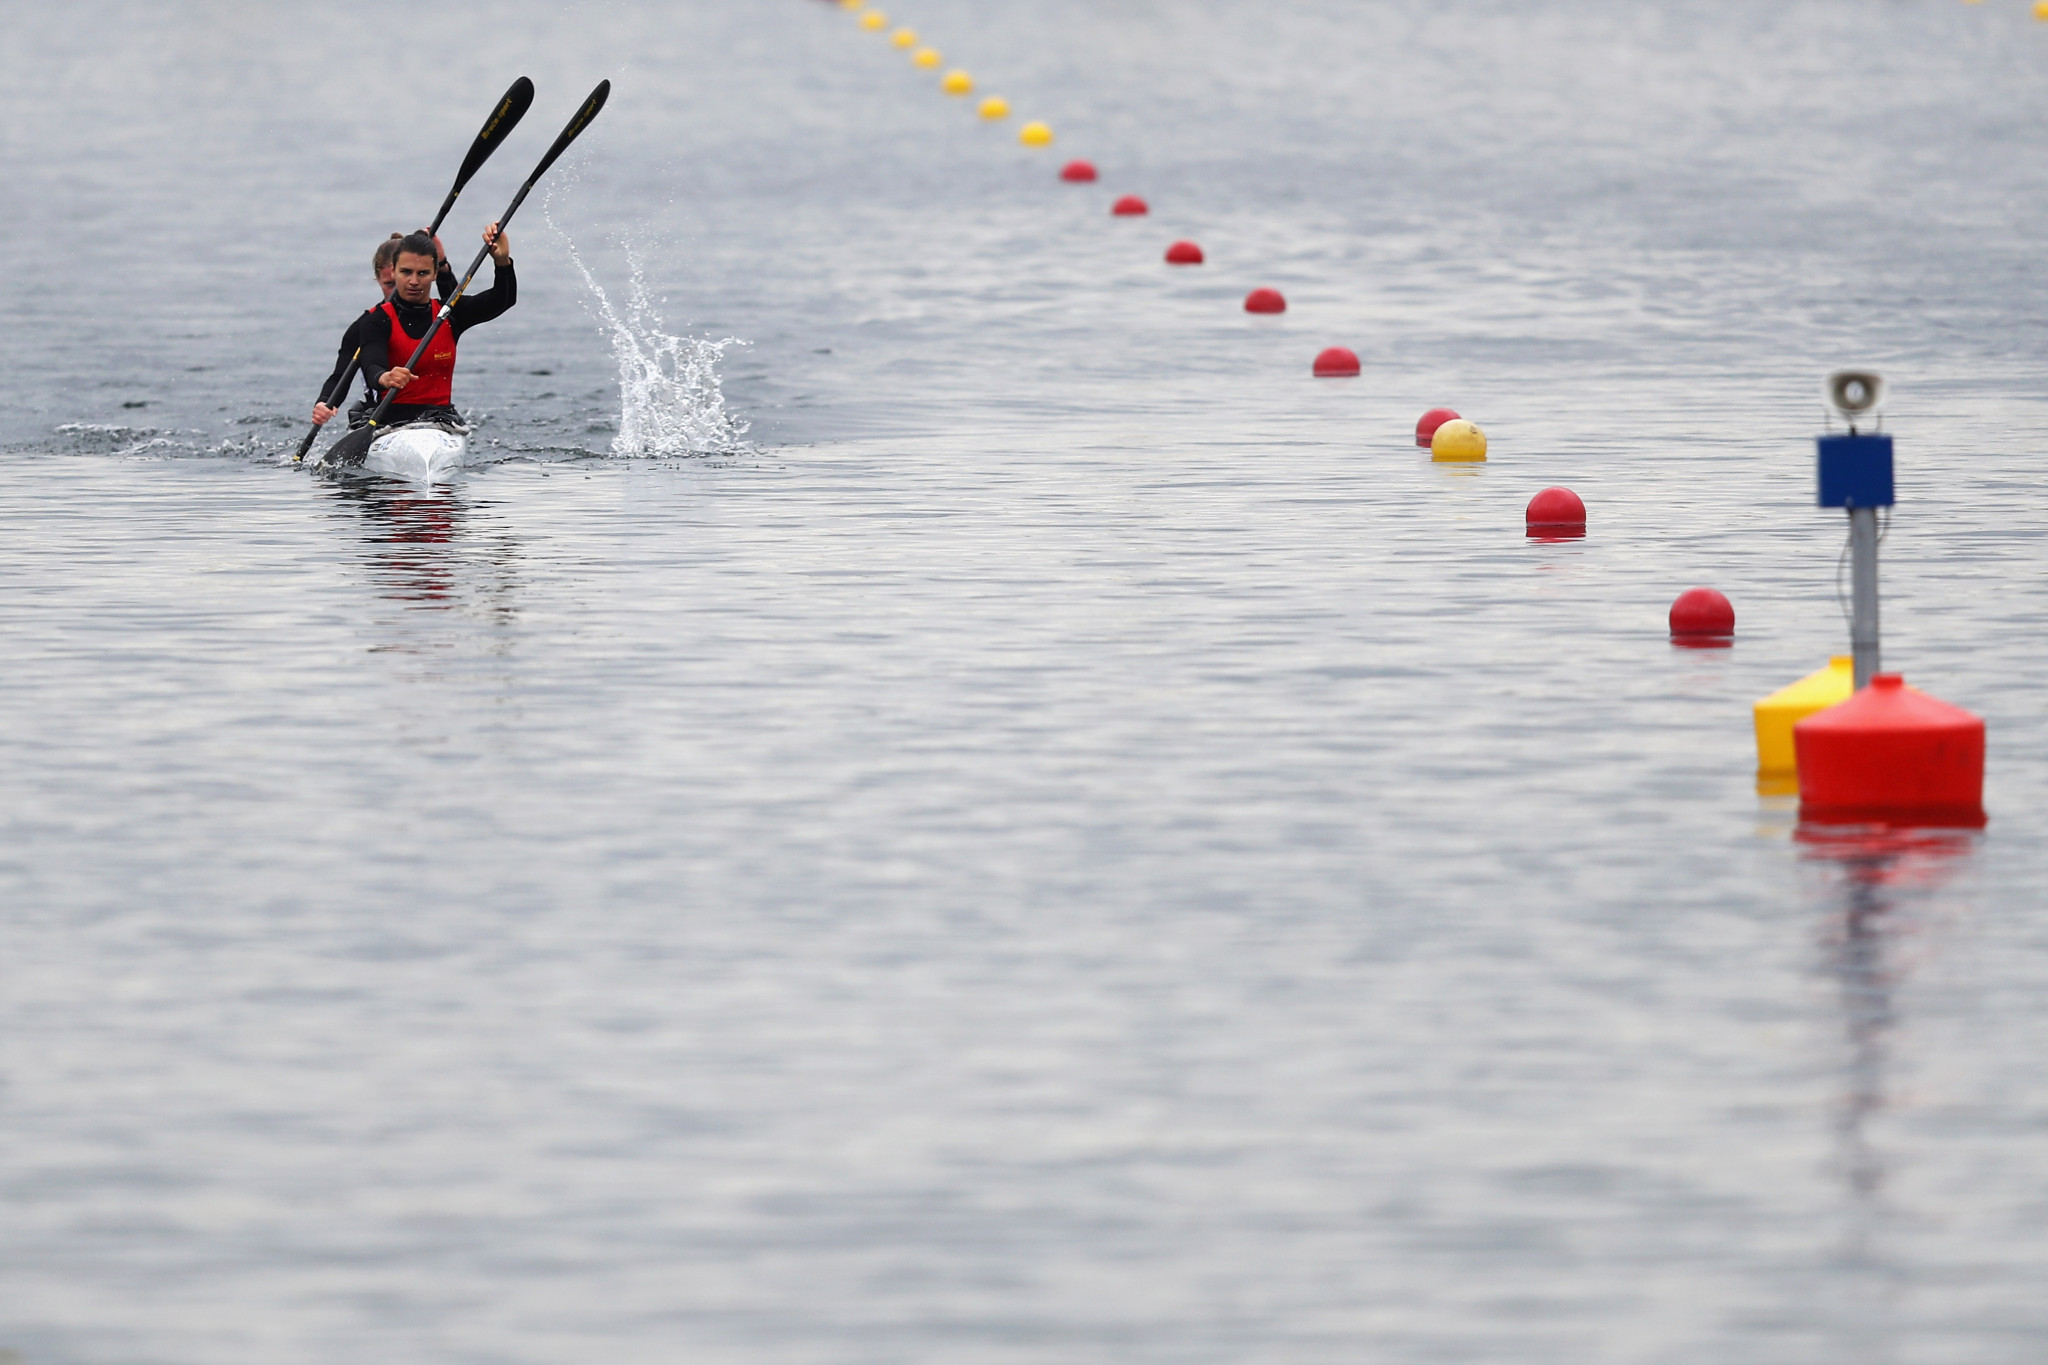 Lize Broekx and Hermien Peters enjoyed a one-two finish in the women's K1 500m ©Getty Images